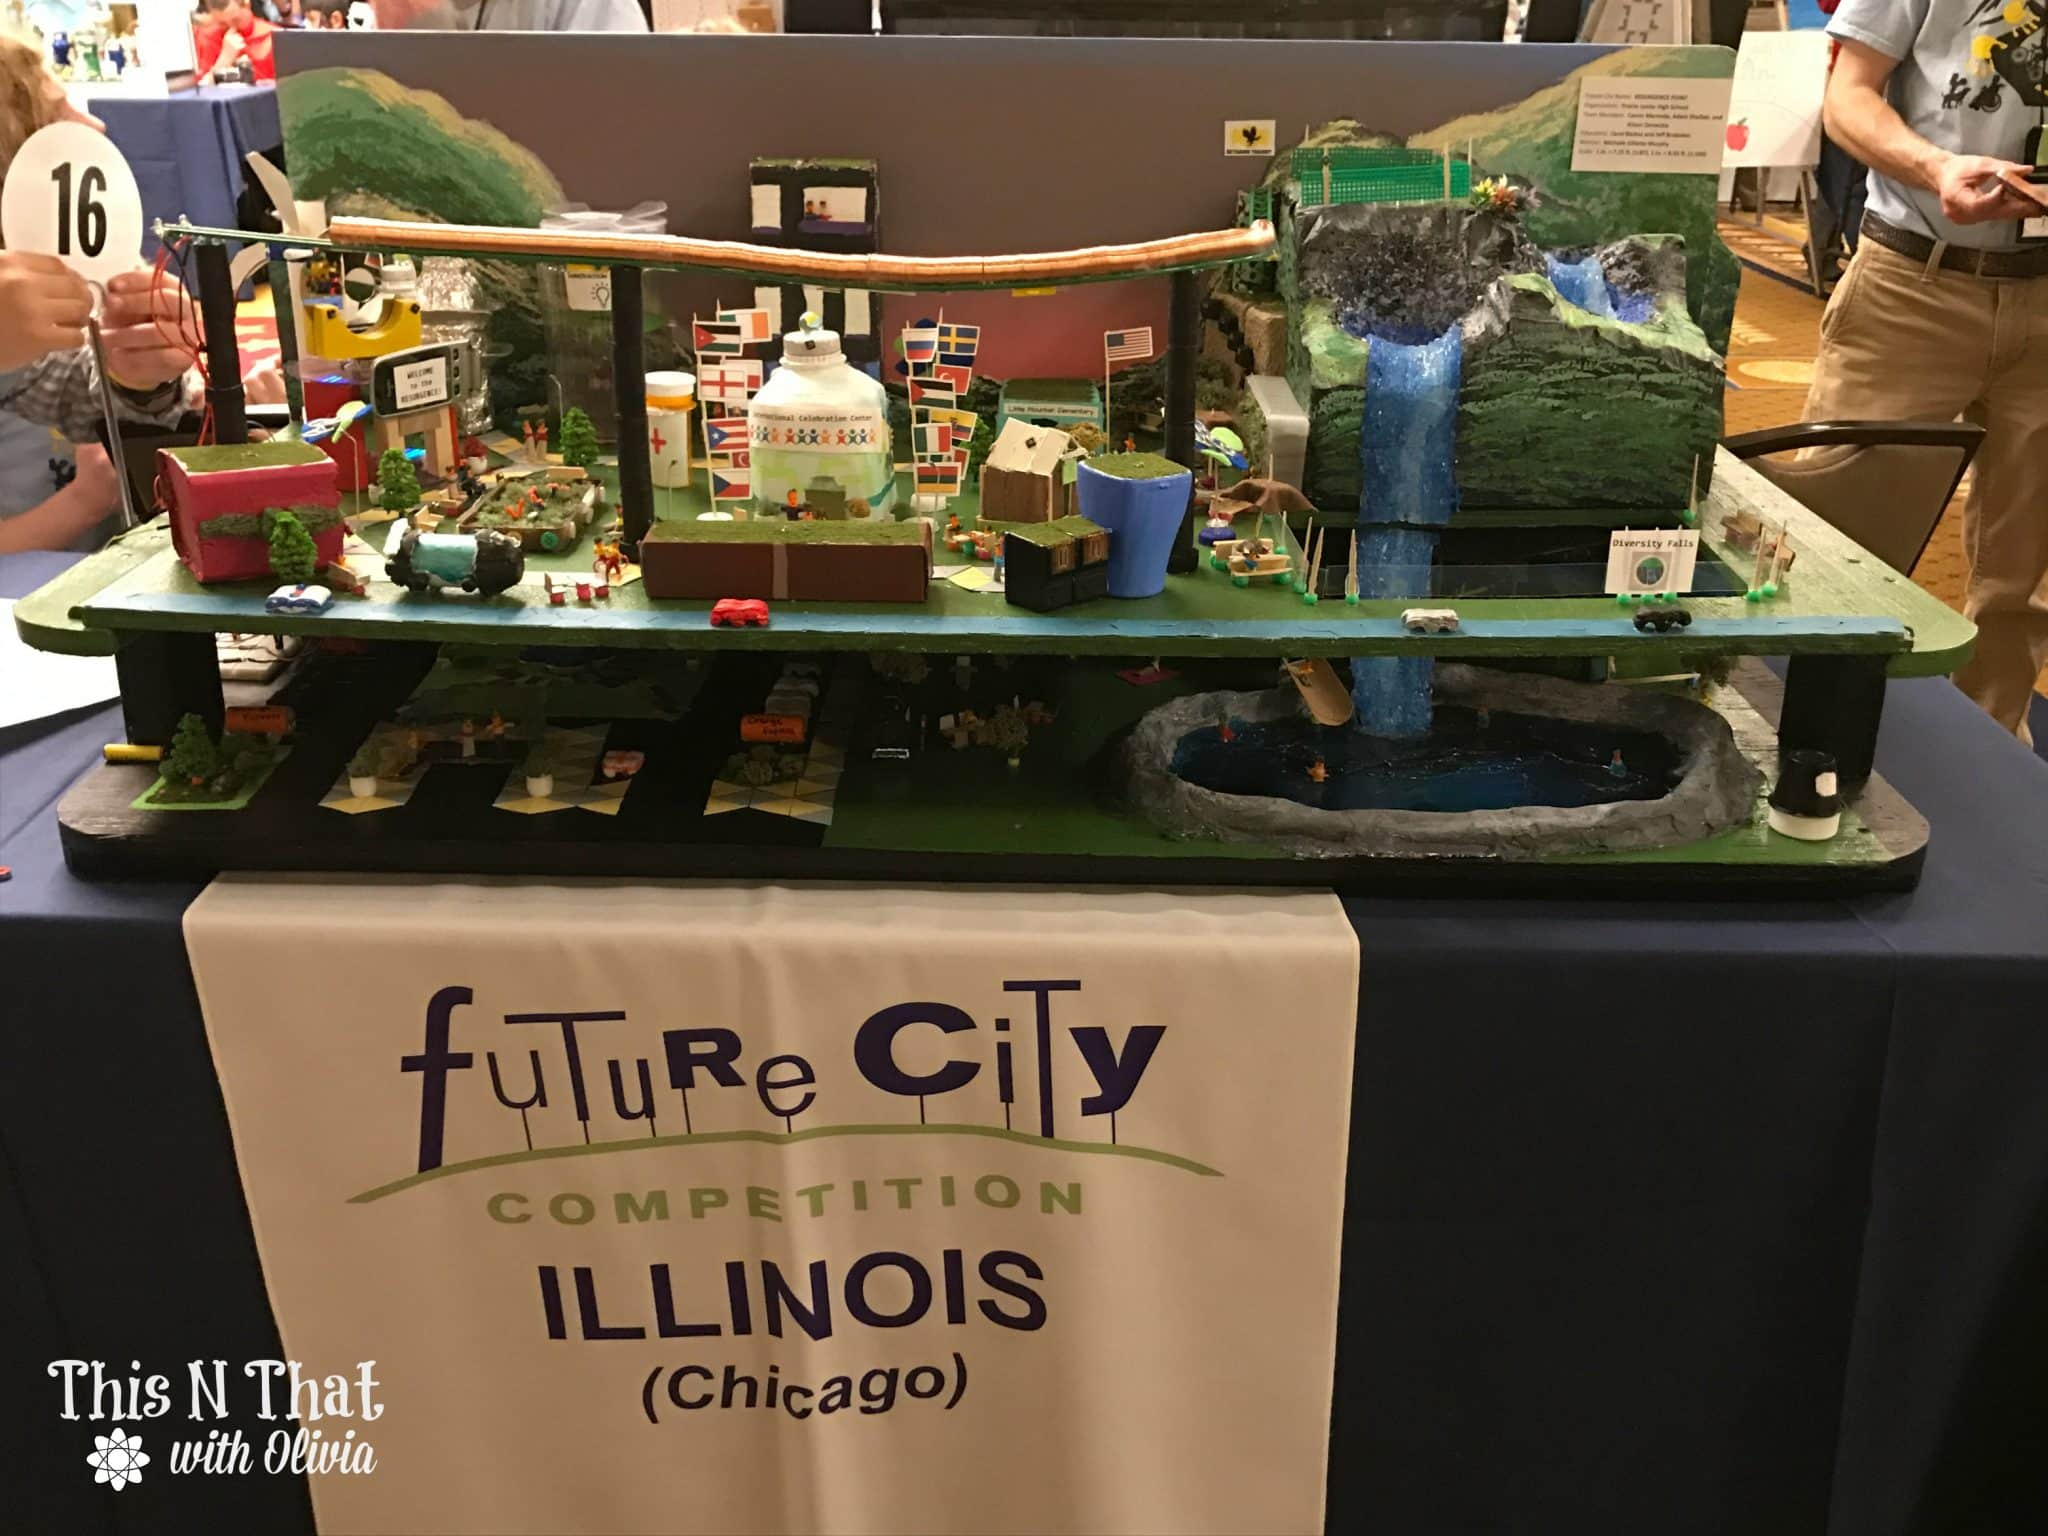 Future City Competition Live in D.C. #FutureCity25 #ad @DiscoverEOrg